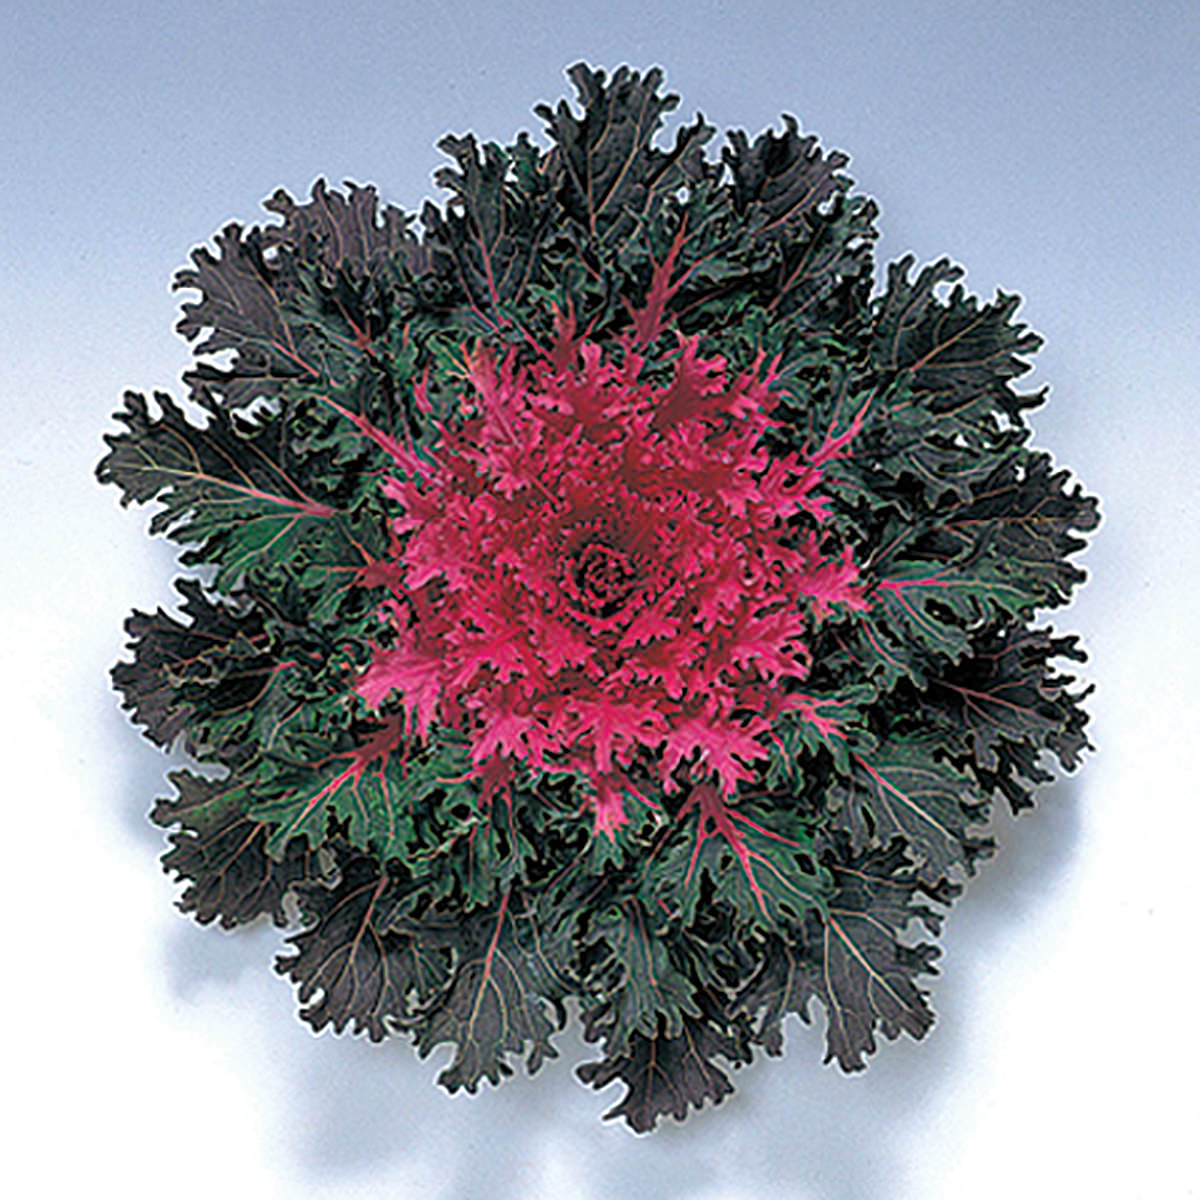 Coral Queen F1 Hybrid Ornamental Flowering Cabbage Kale Seeds Ne